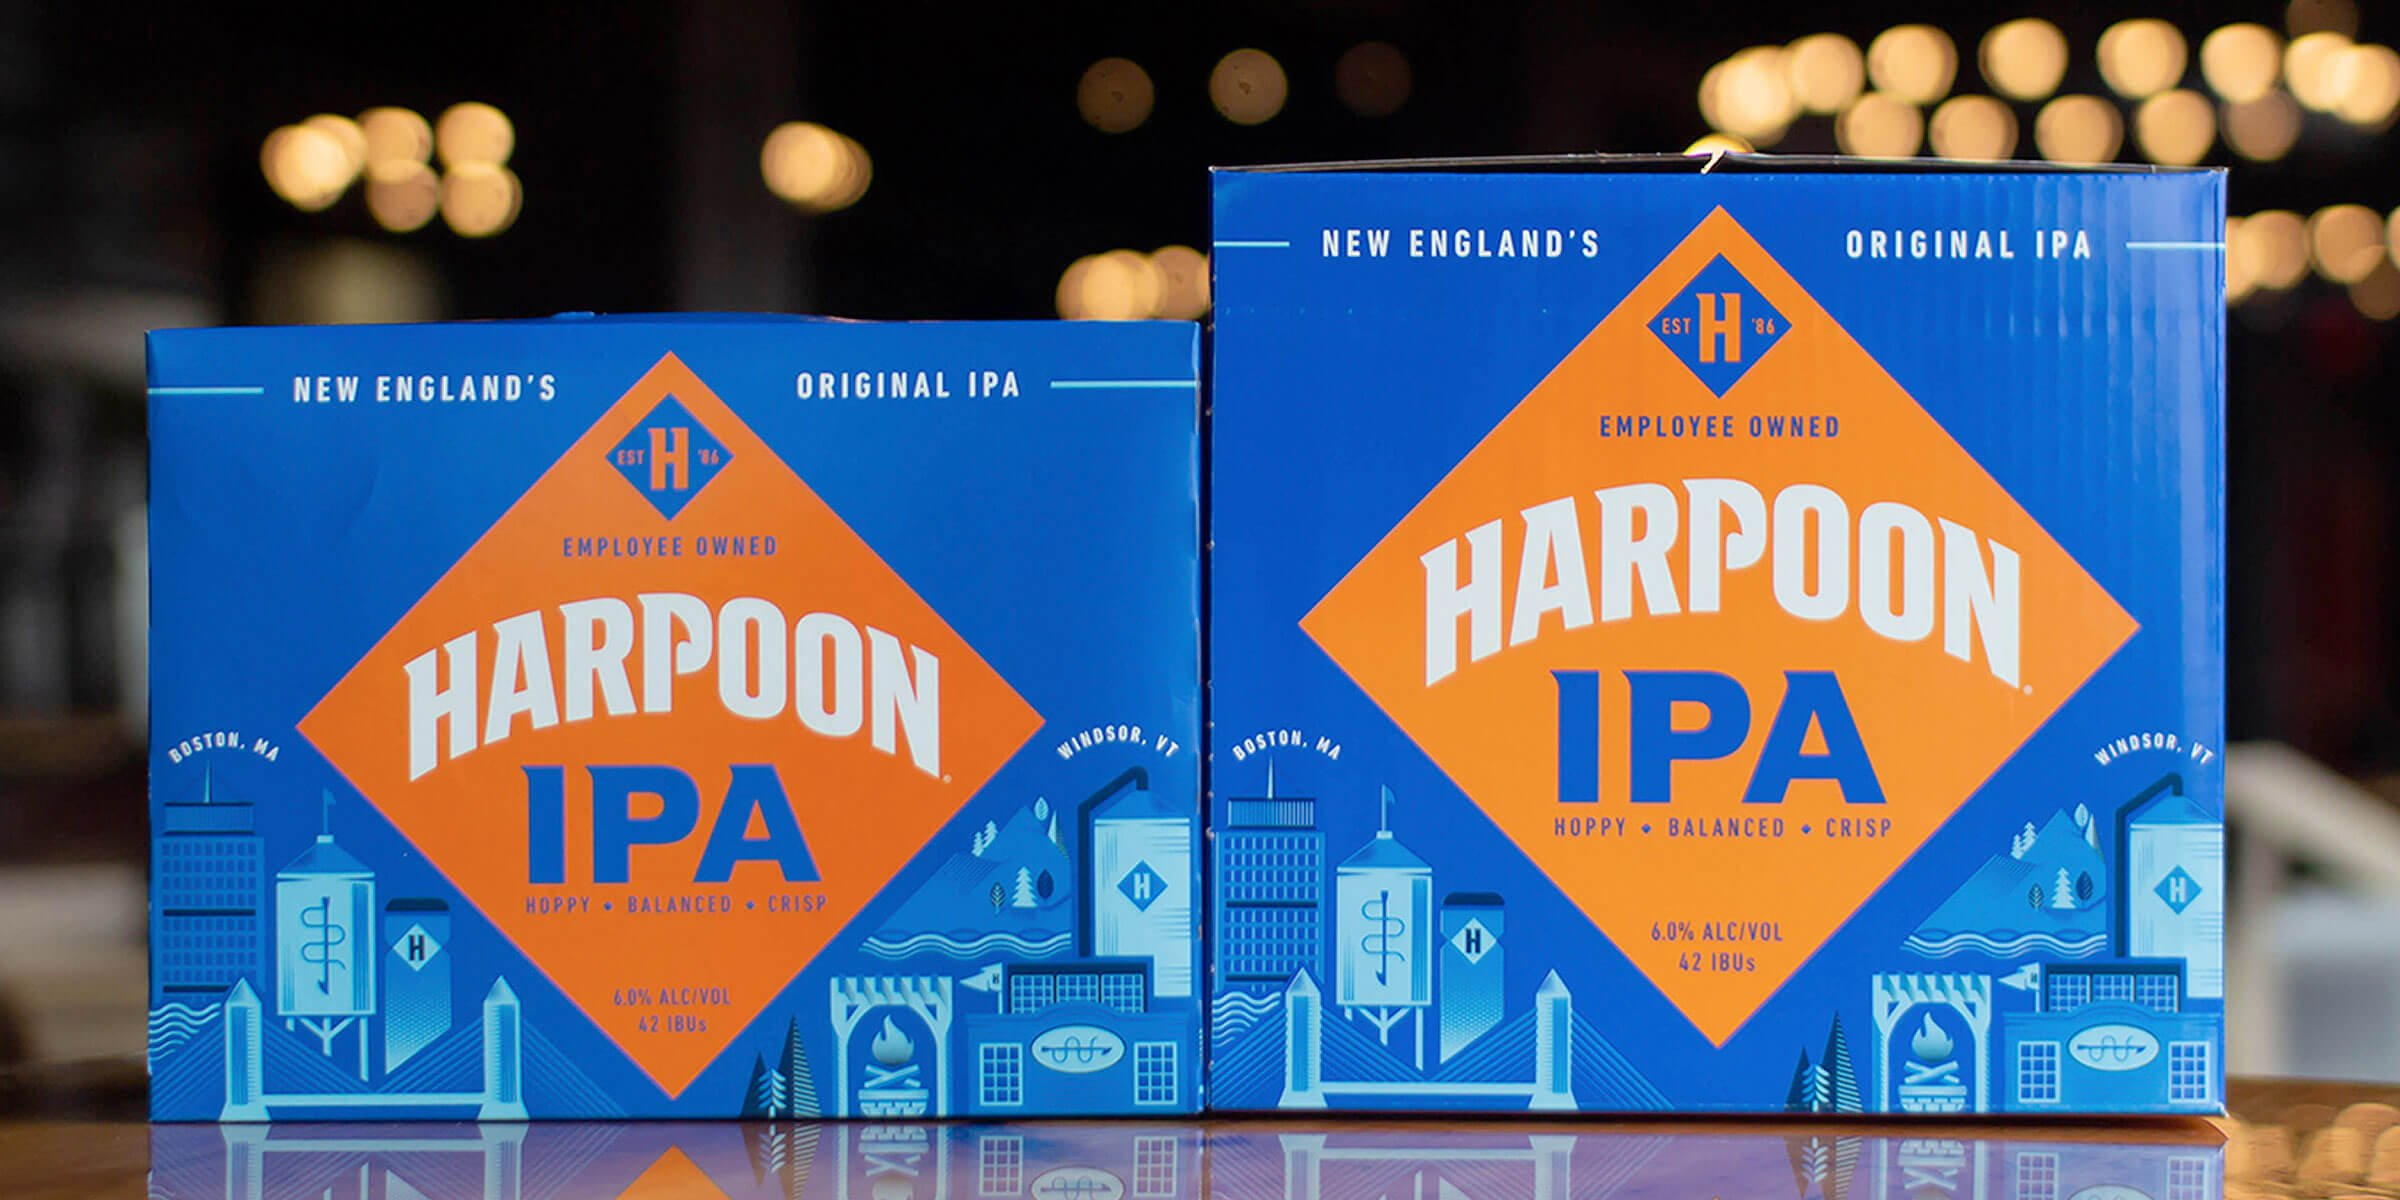 Harpoon Brewery announced its flagship IPA is getting a makeover with bold new packaging that reflects the fans who drink it and employee owners who make it.